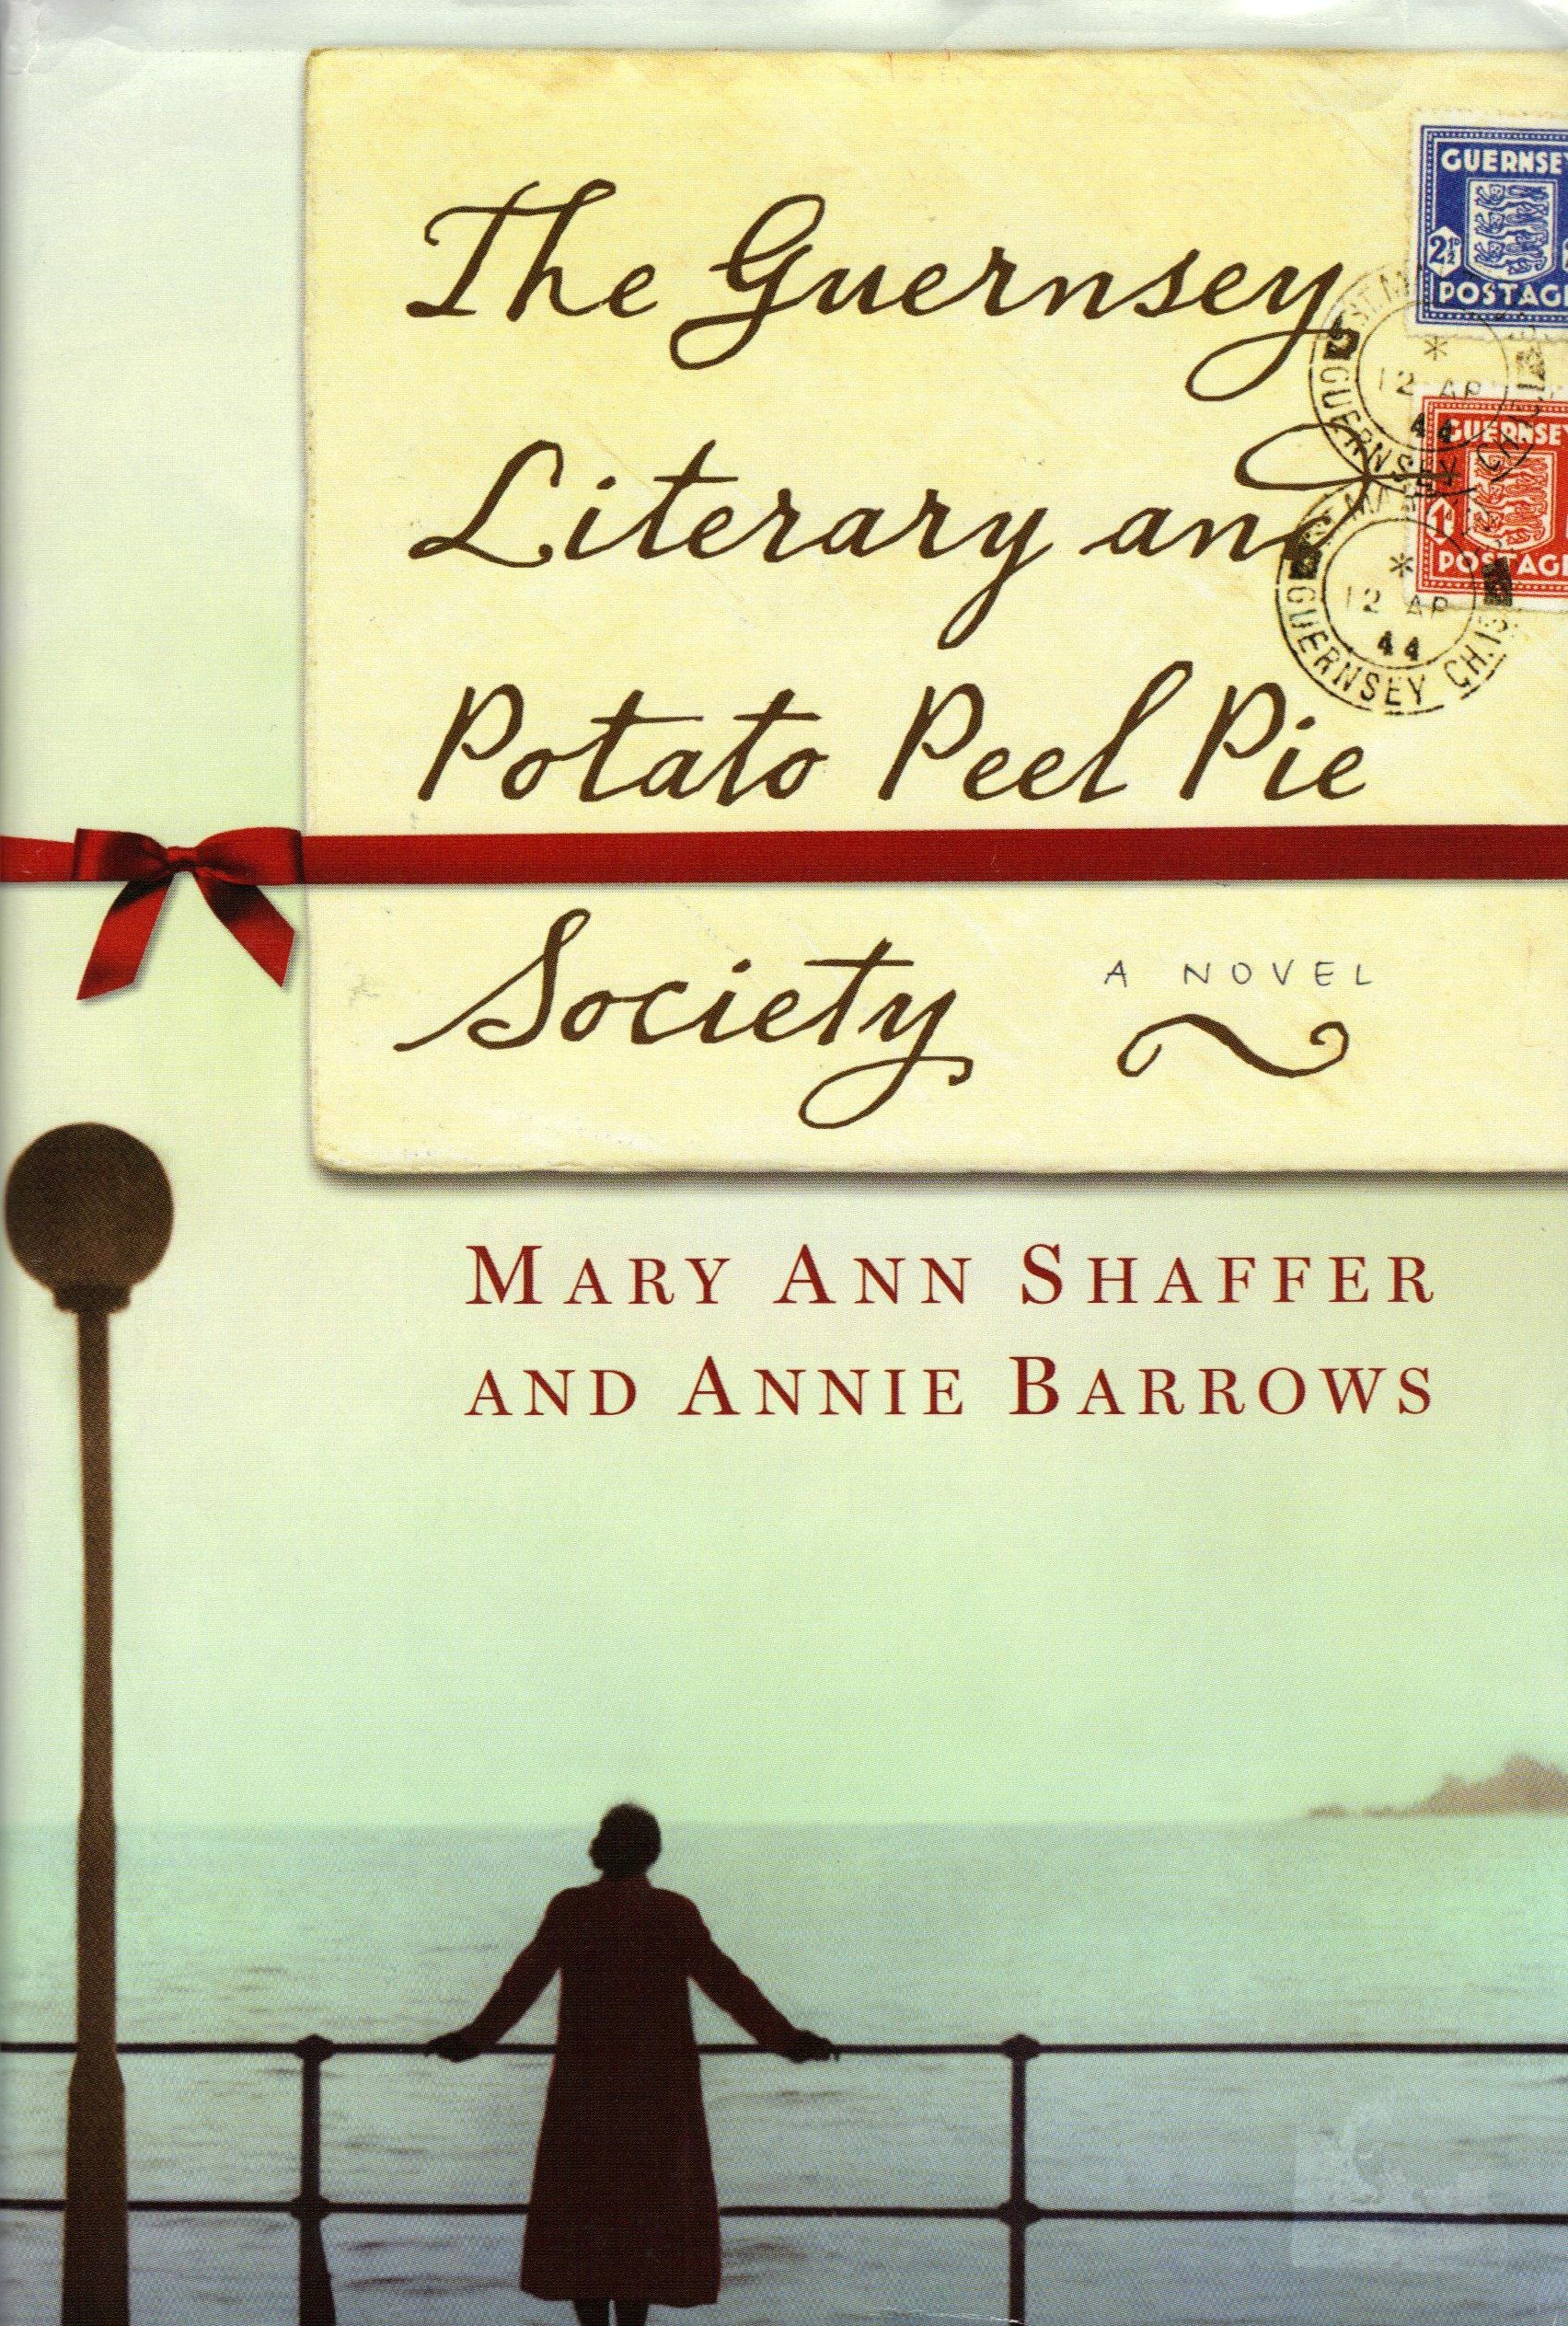 Cover image of the Guernsey Literary and Potato Peel Pie Society